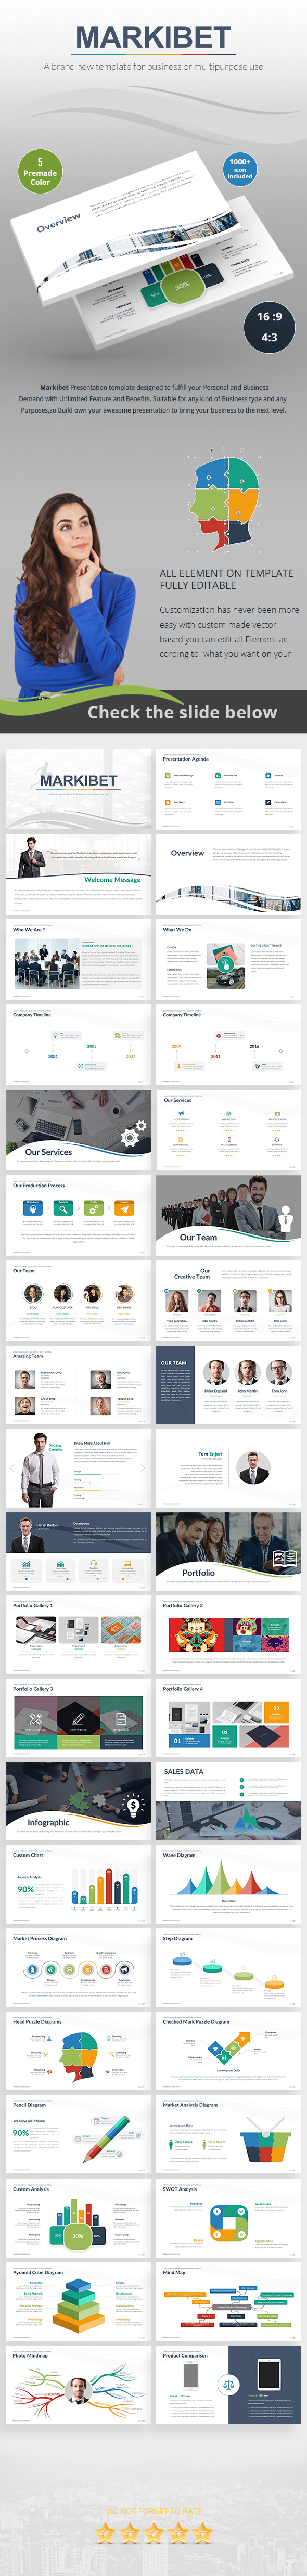 Markibet Keynote Template Design - Business PowerPoint Templates